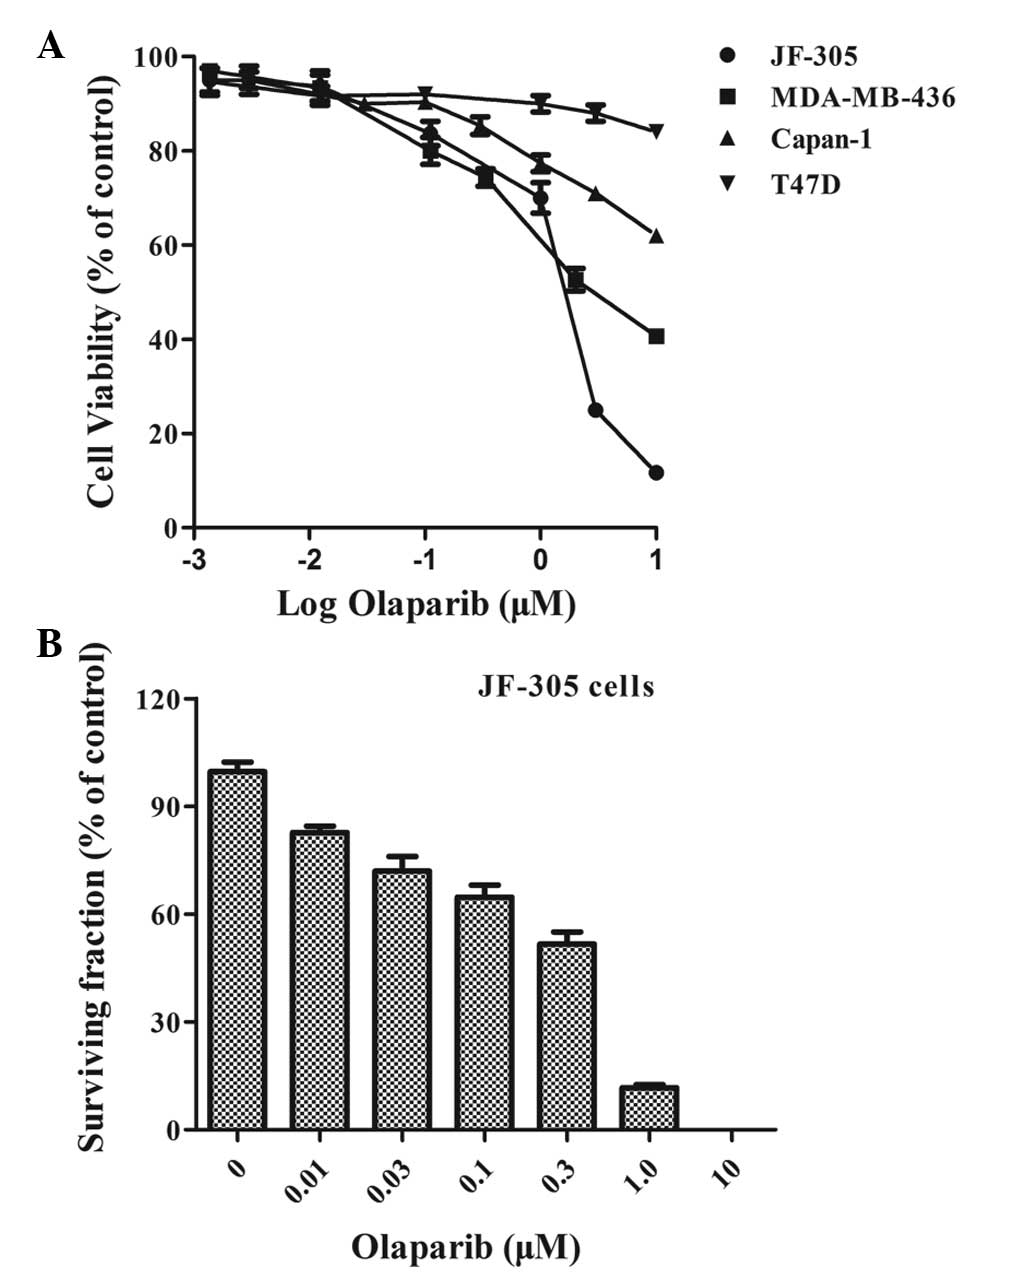 JF-305, a pancreatic cancer cell line is highly sensitive to the PARP inhibitor olaparib